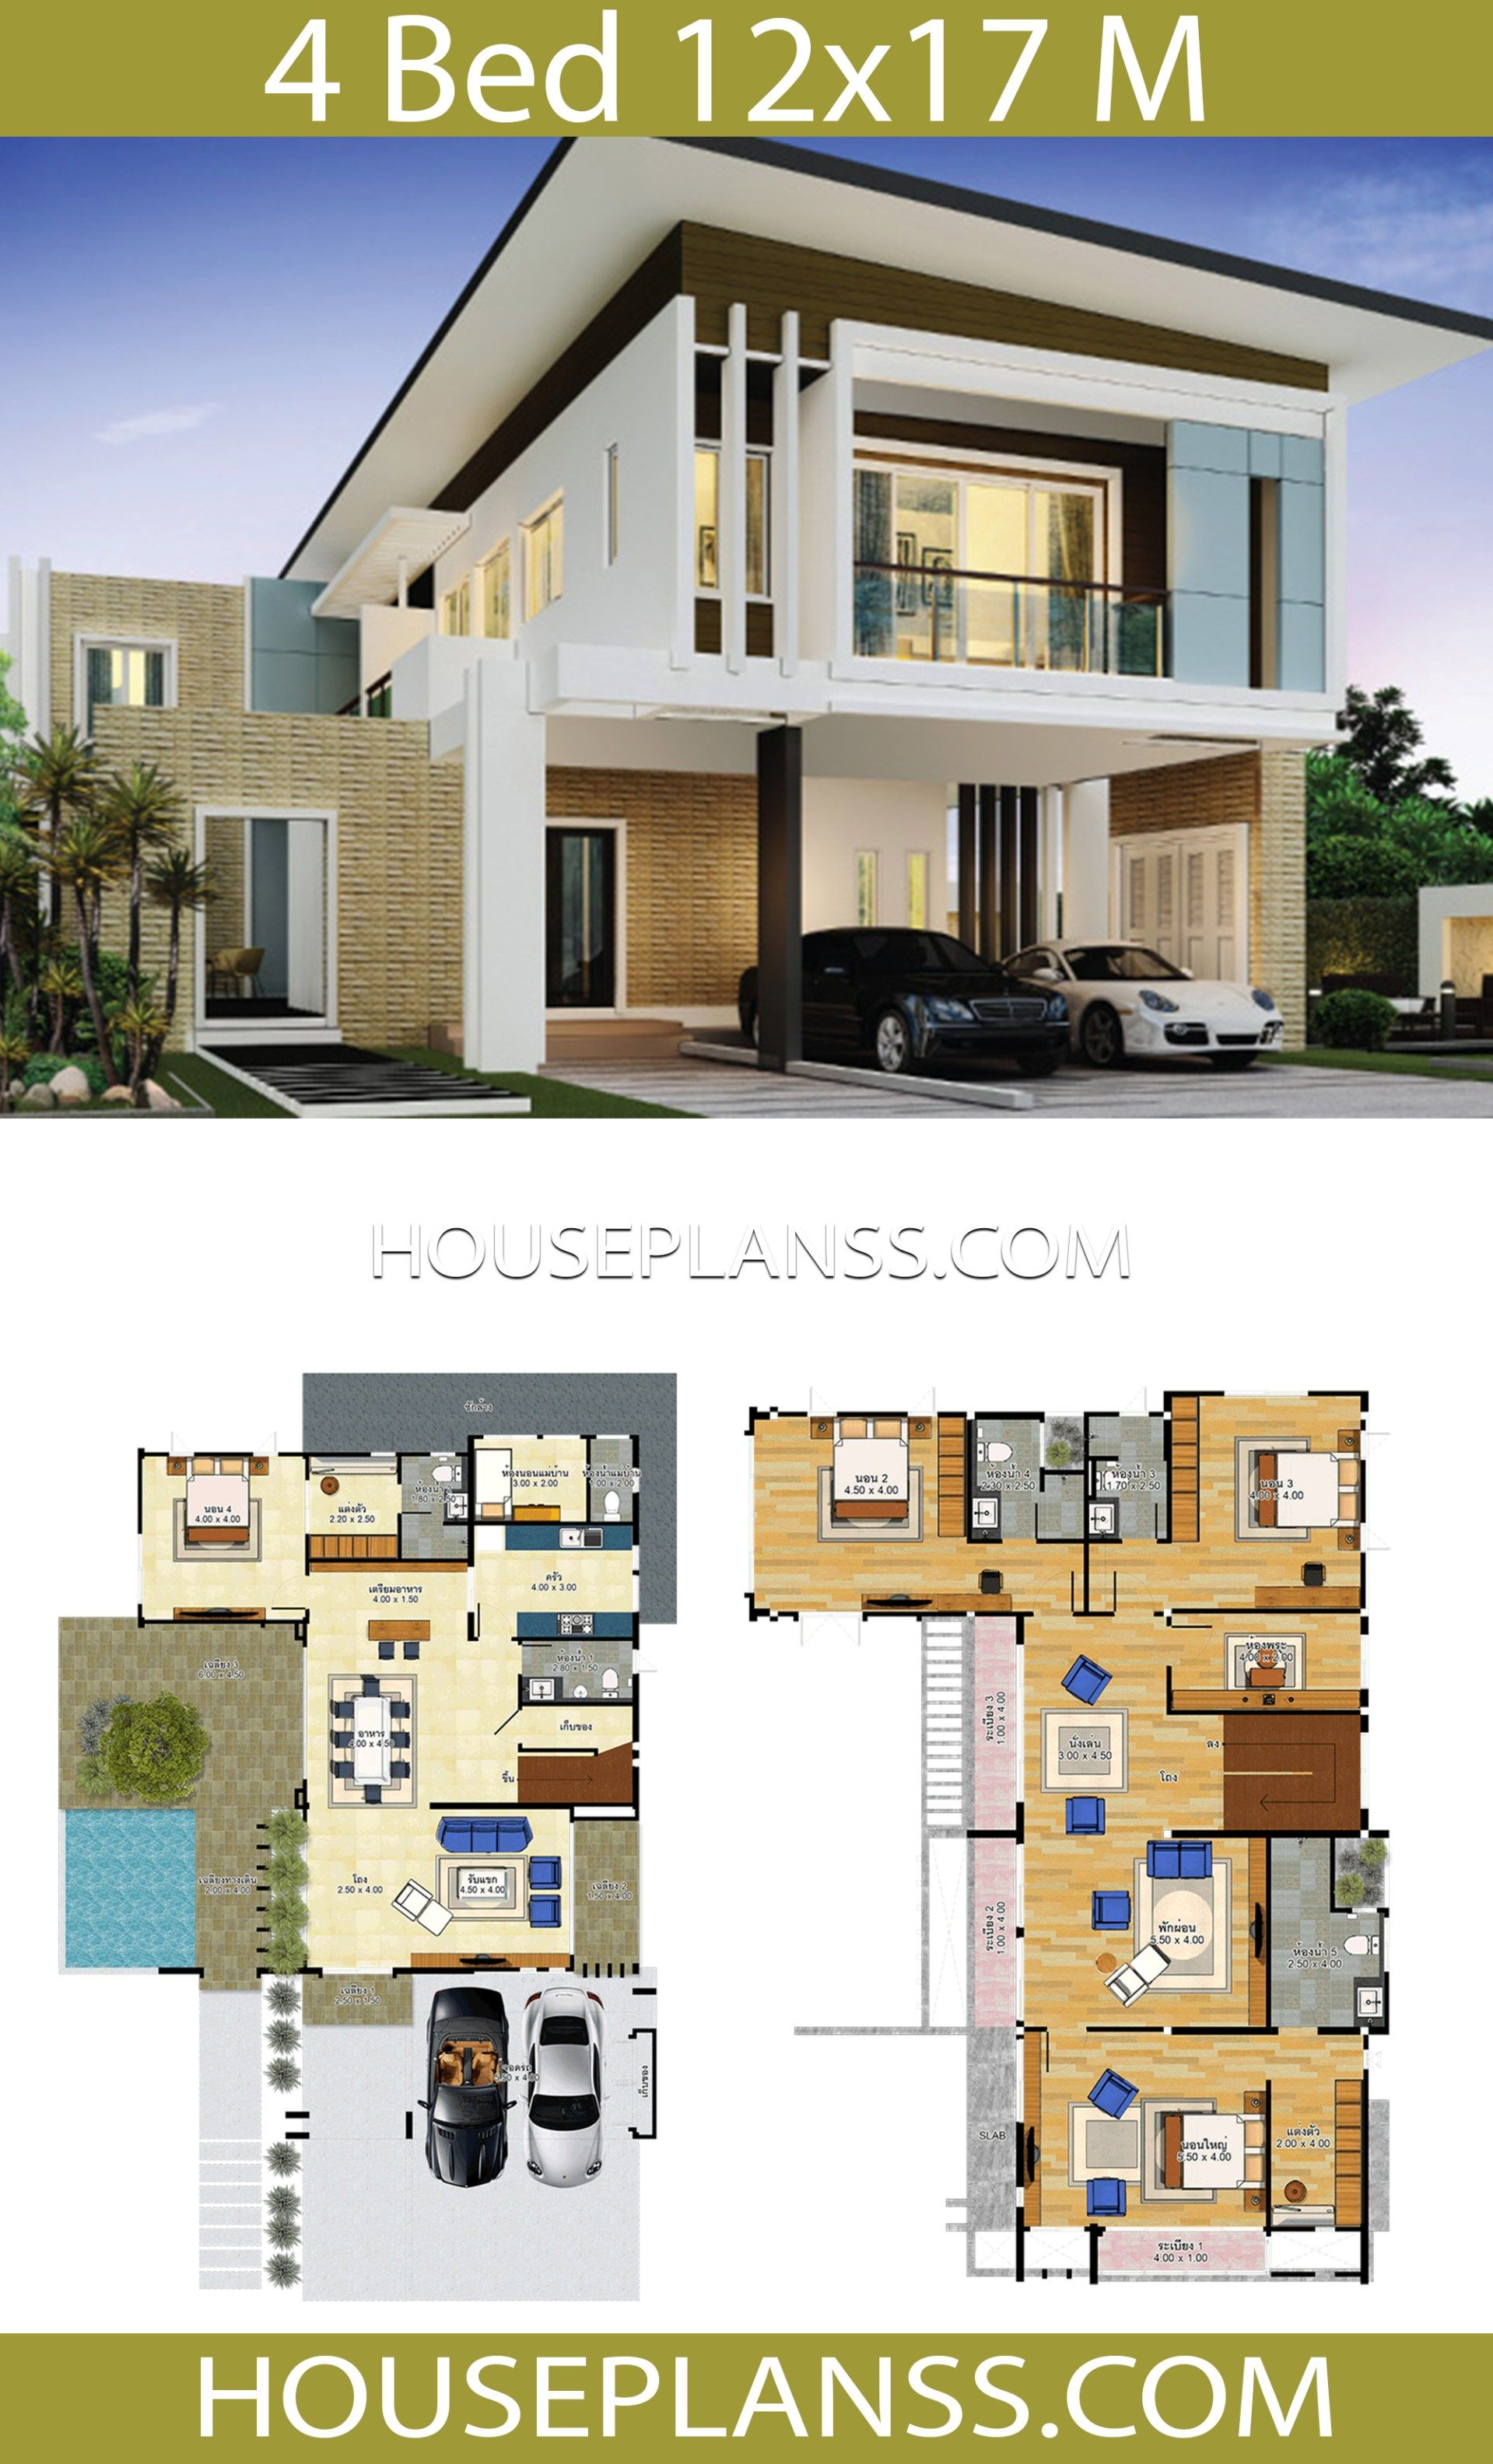 House Design Idea 12x17 With 4 Bedrooms House Plans S Beautiful House Plans House Outside Design Model House Plan